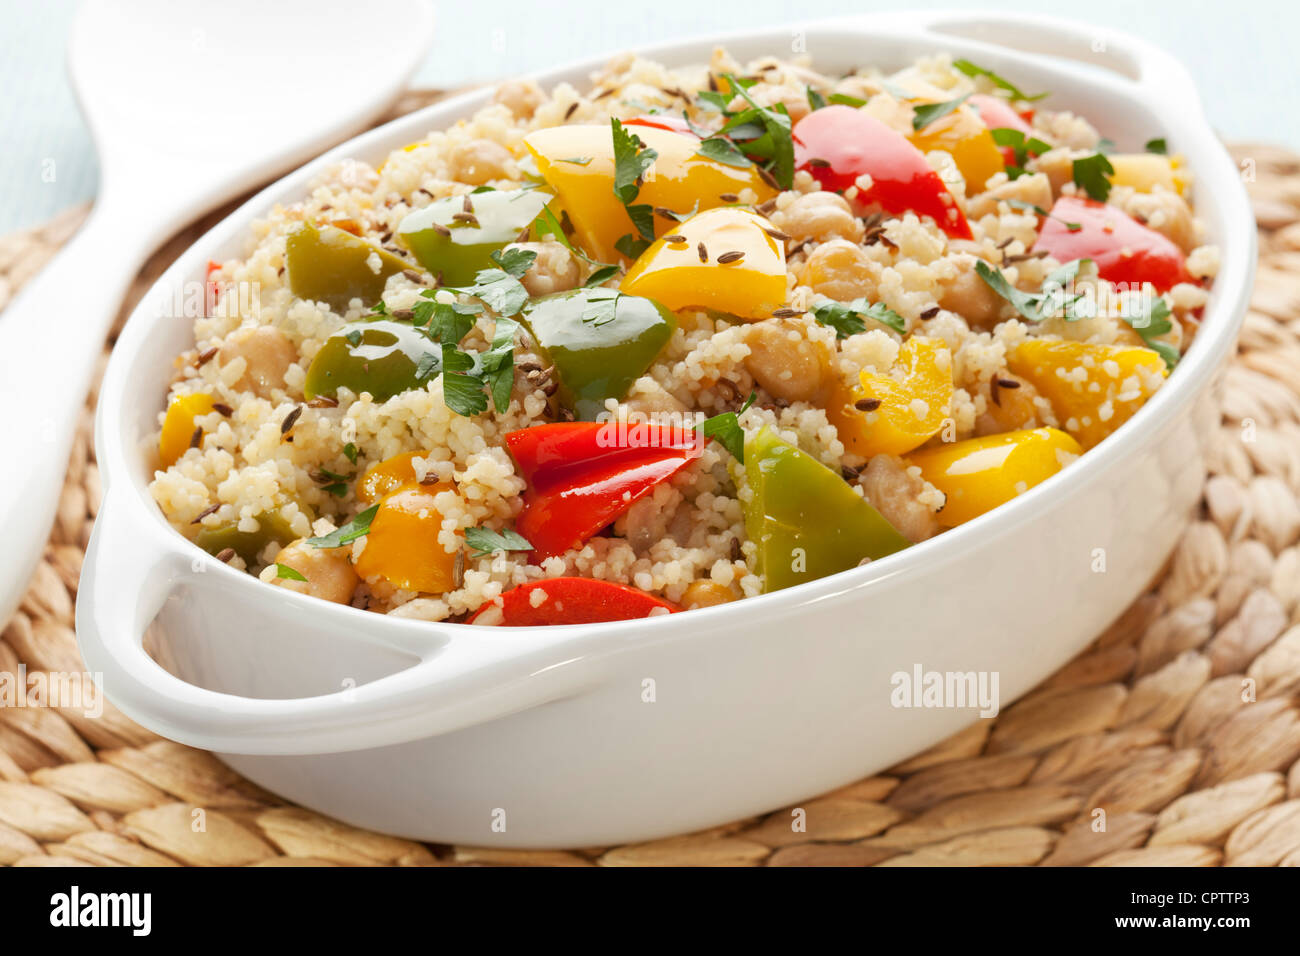 Couscous with chickpeas, red, green and yellow peppers, onion, cumin seeds and parsley, cooked with extra virgin - Stock Image